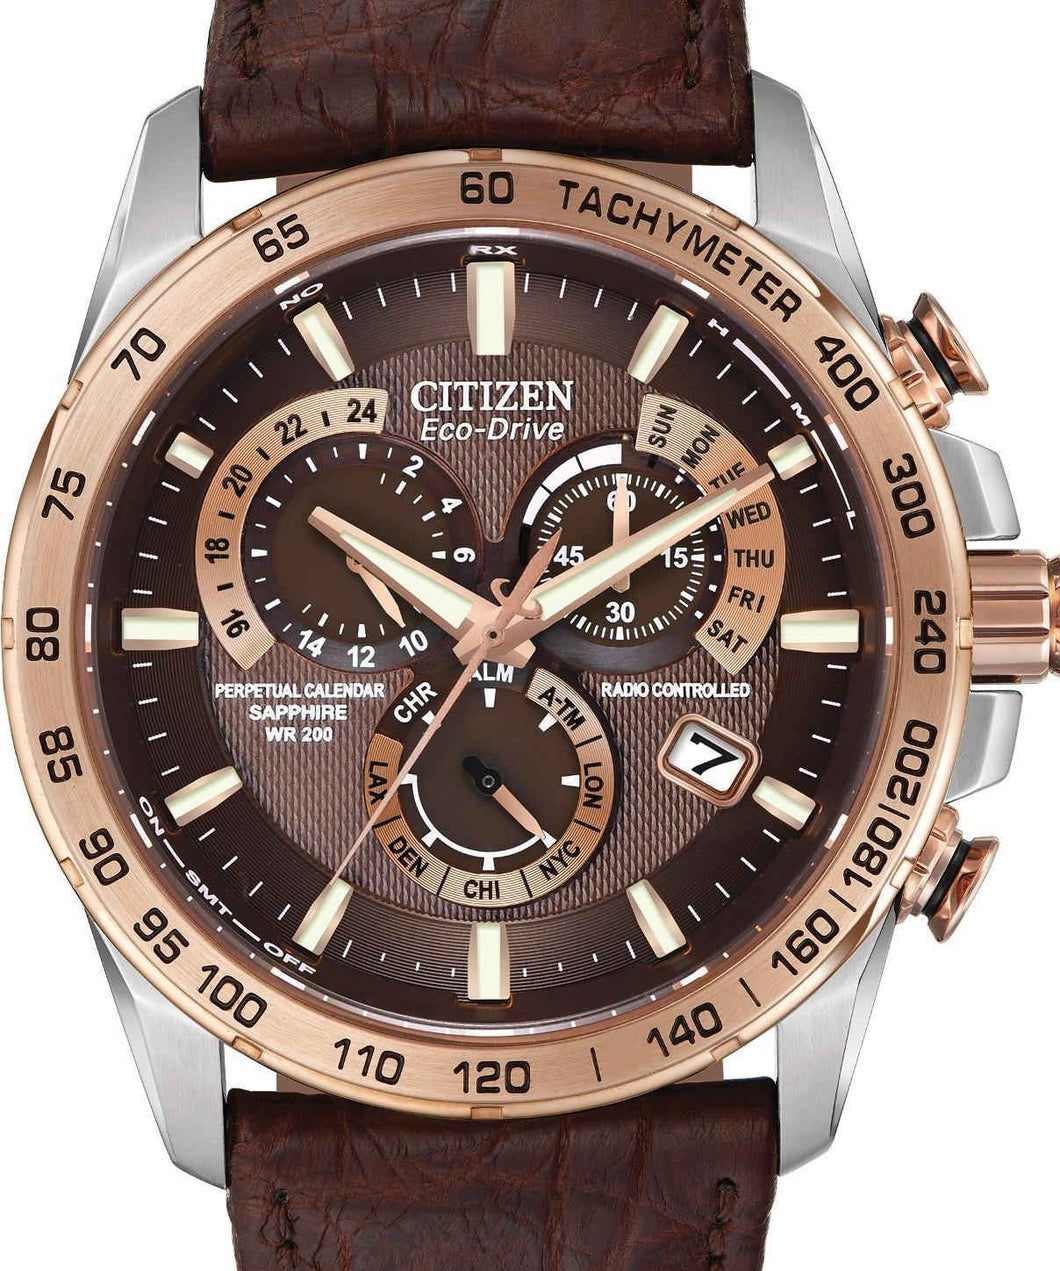 Authentic CITIZEN Eco Drive Limited Edition World Time Atomic Timekeeping Mens Watch